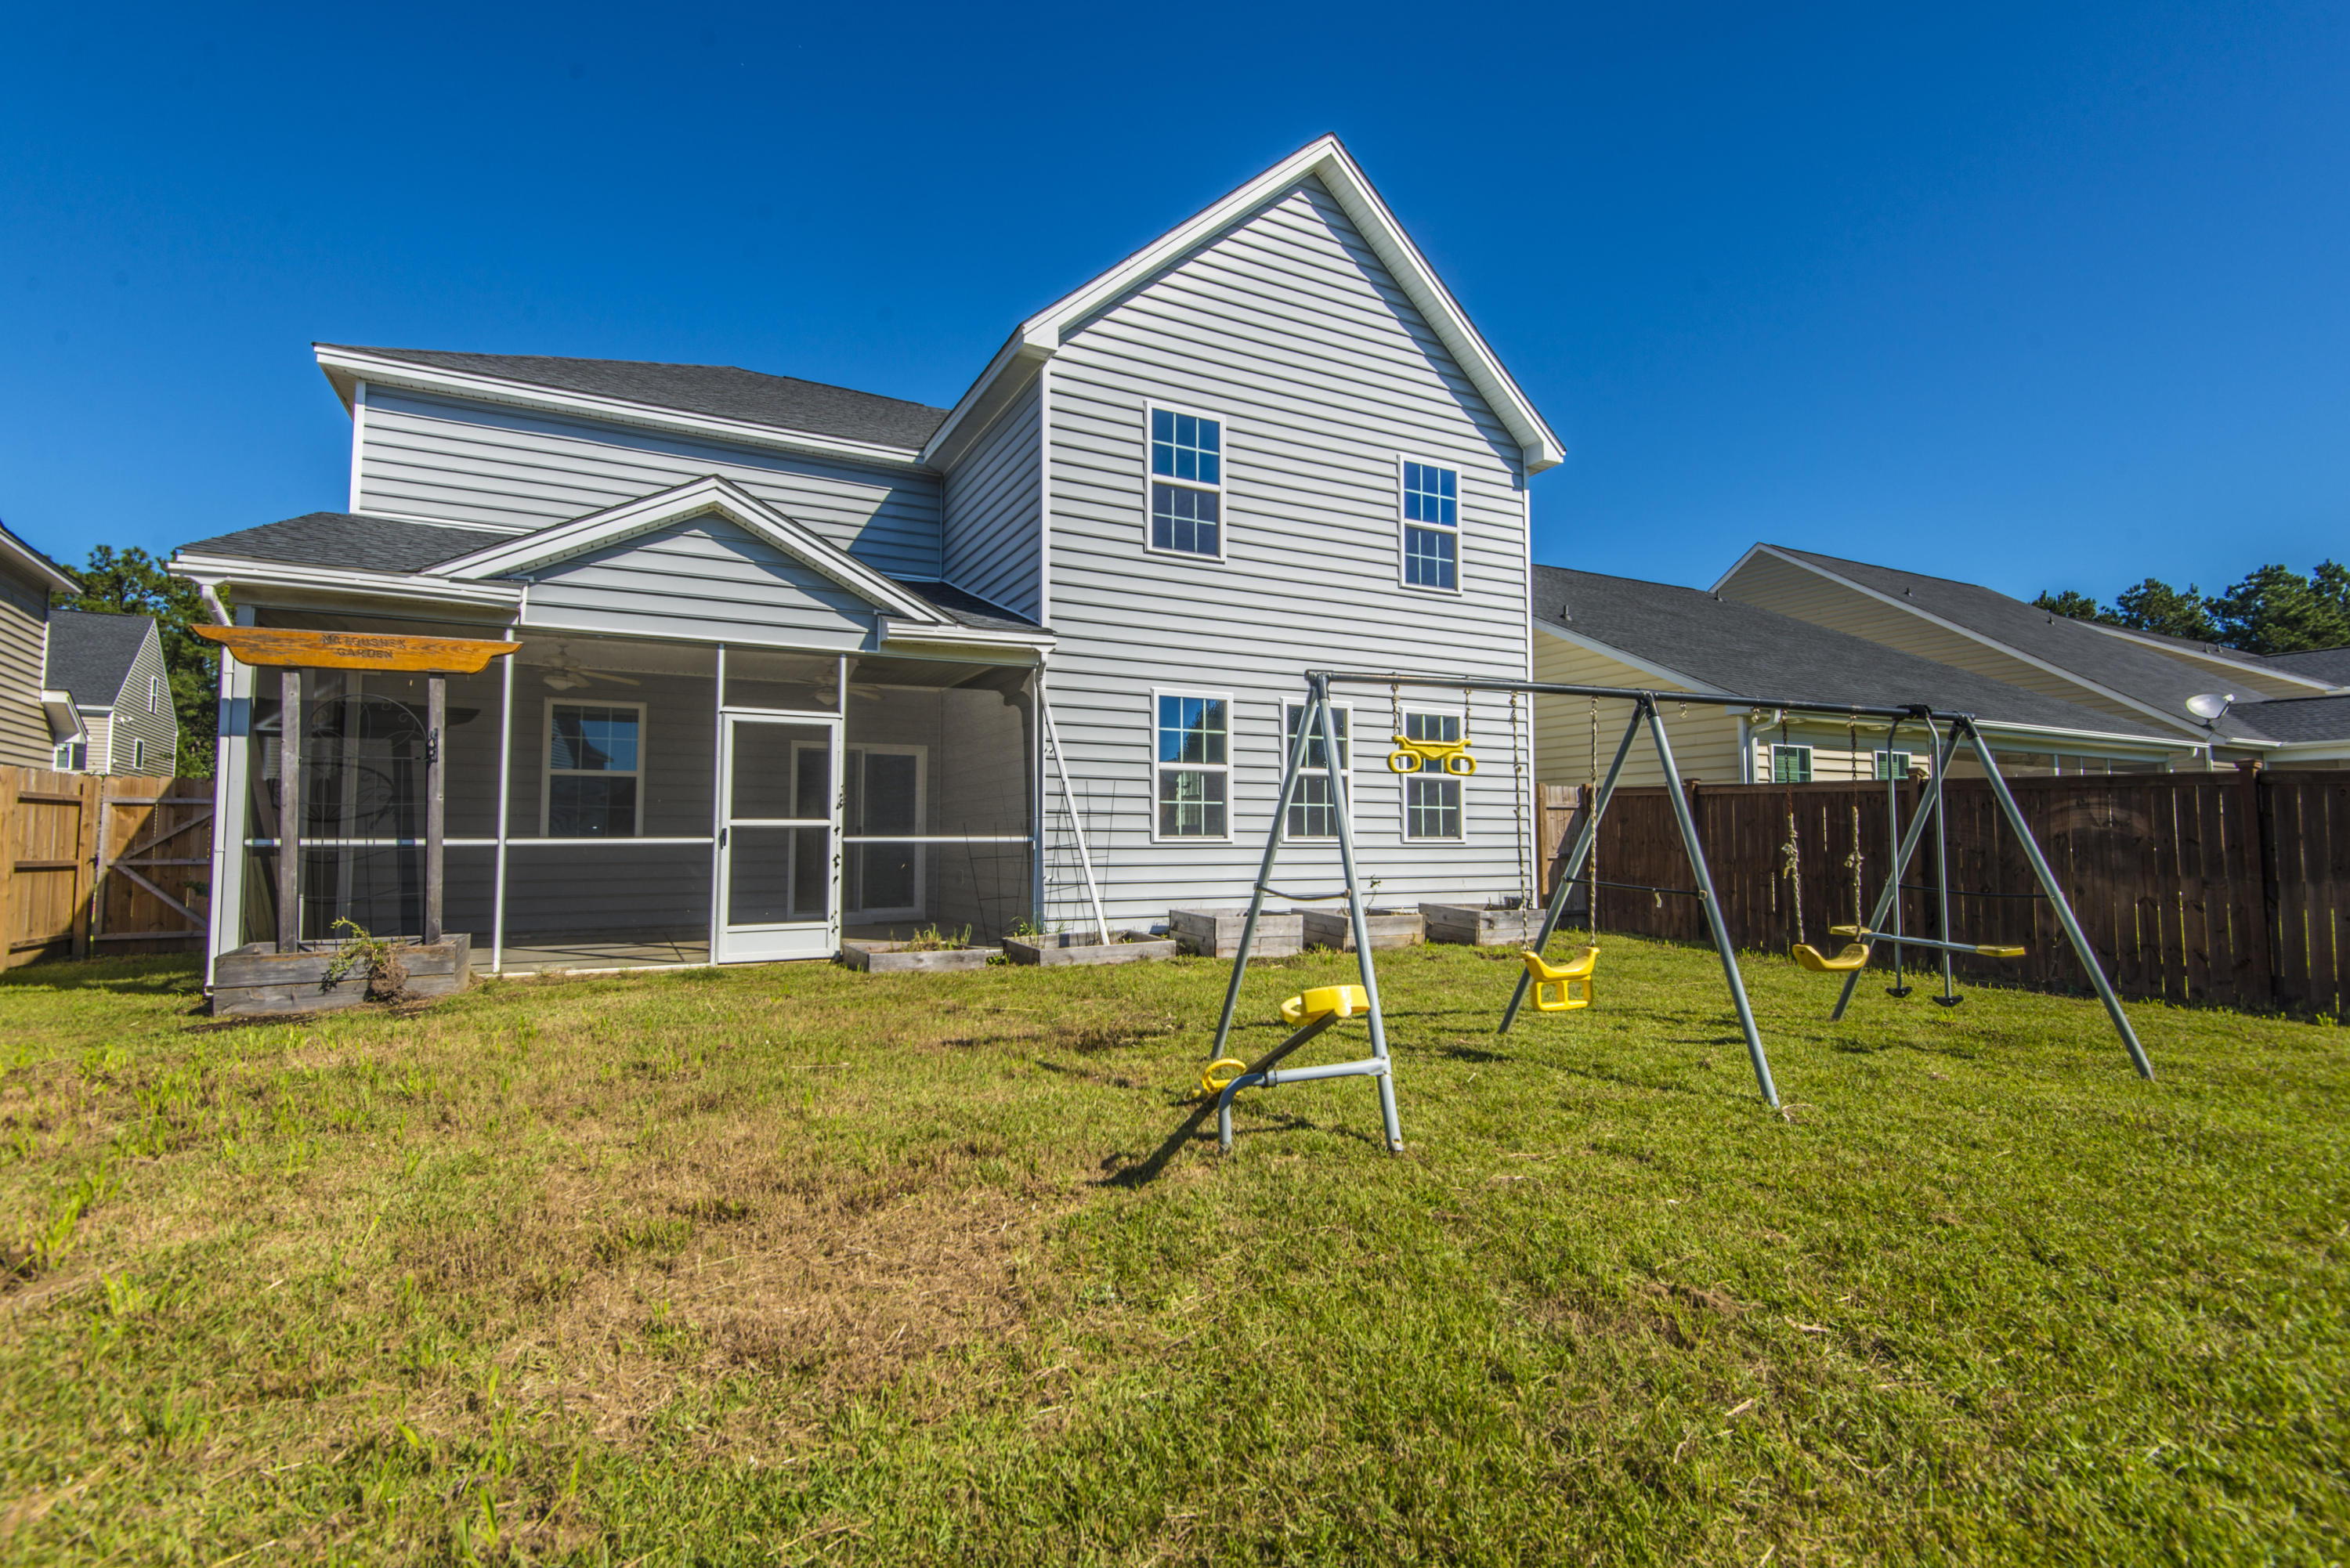 Wentworth Hall Homes For Sale - 216 Wexford, Summerville, SC - 23